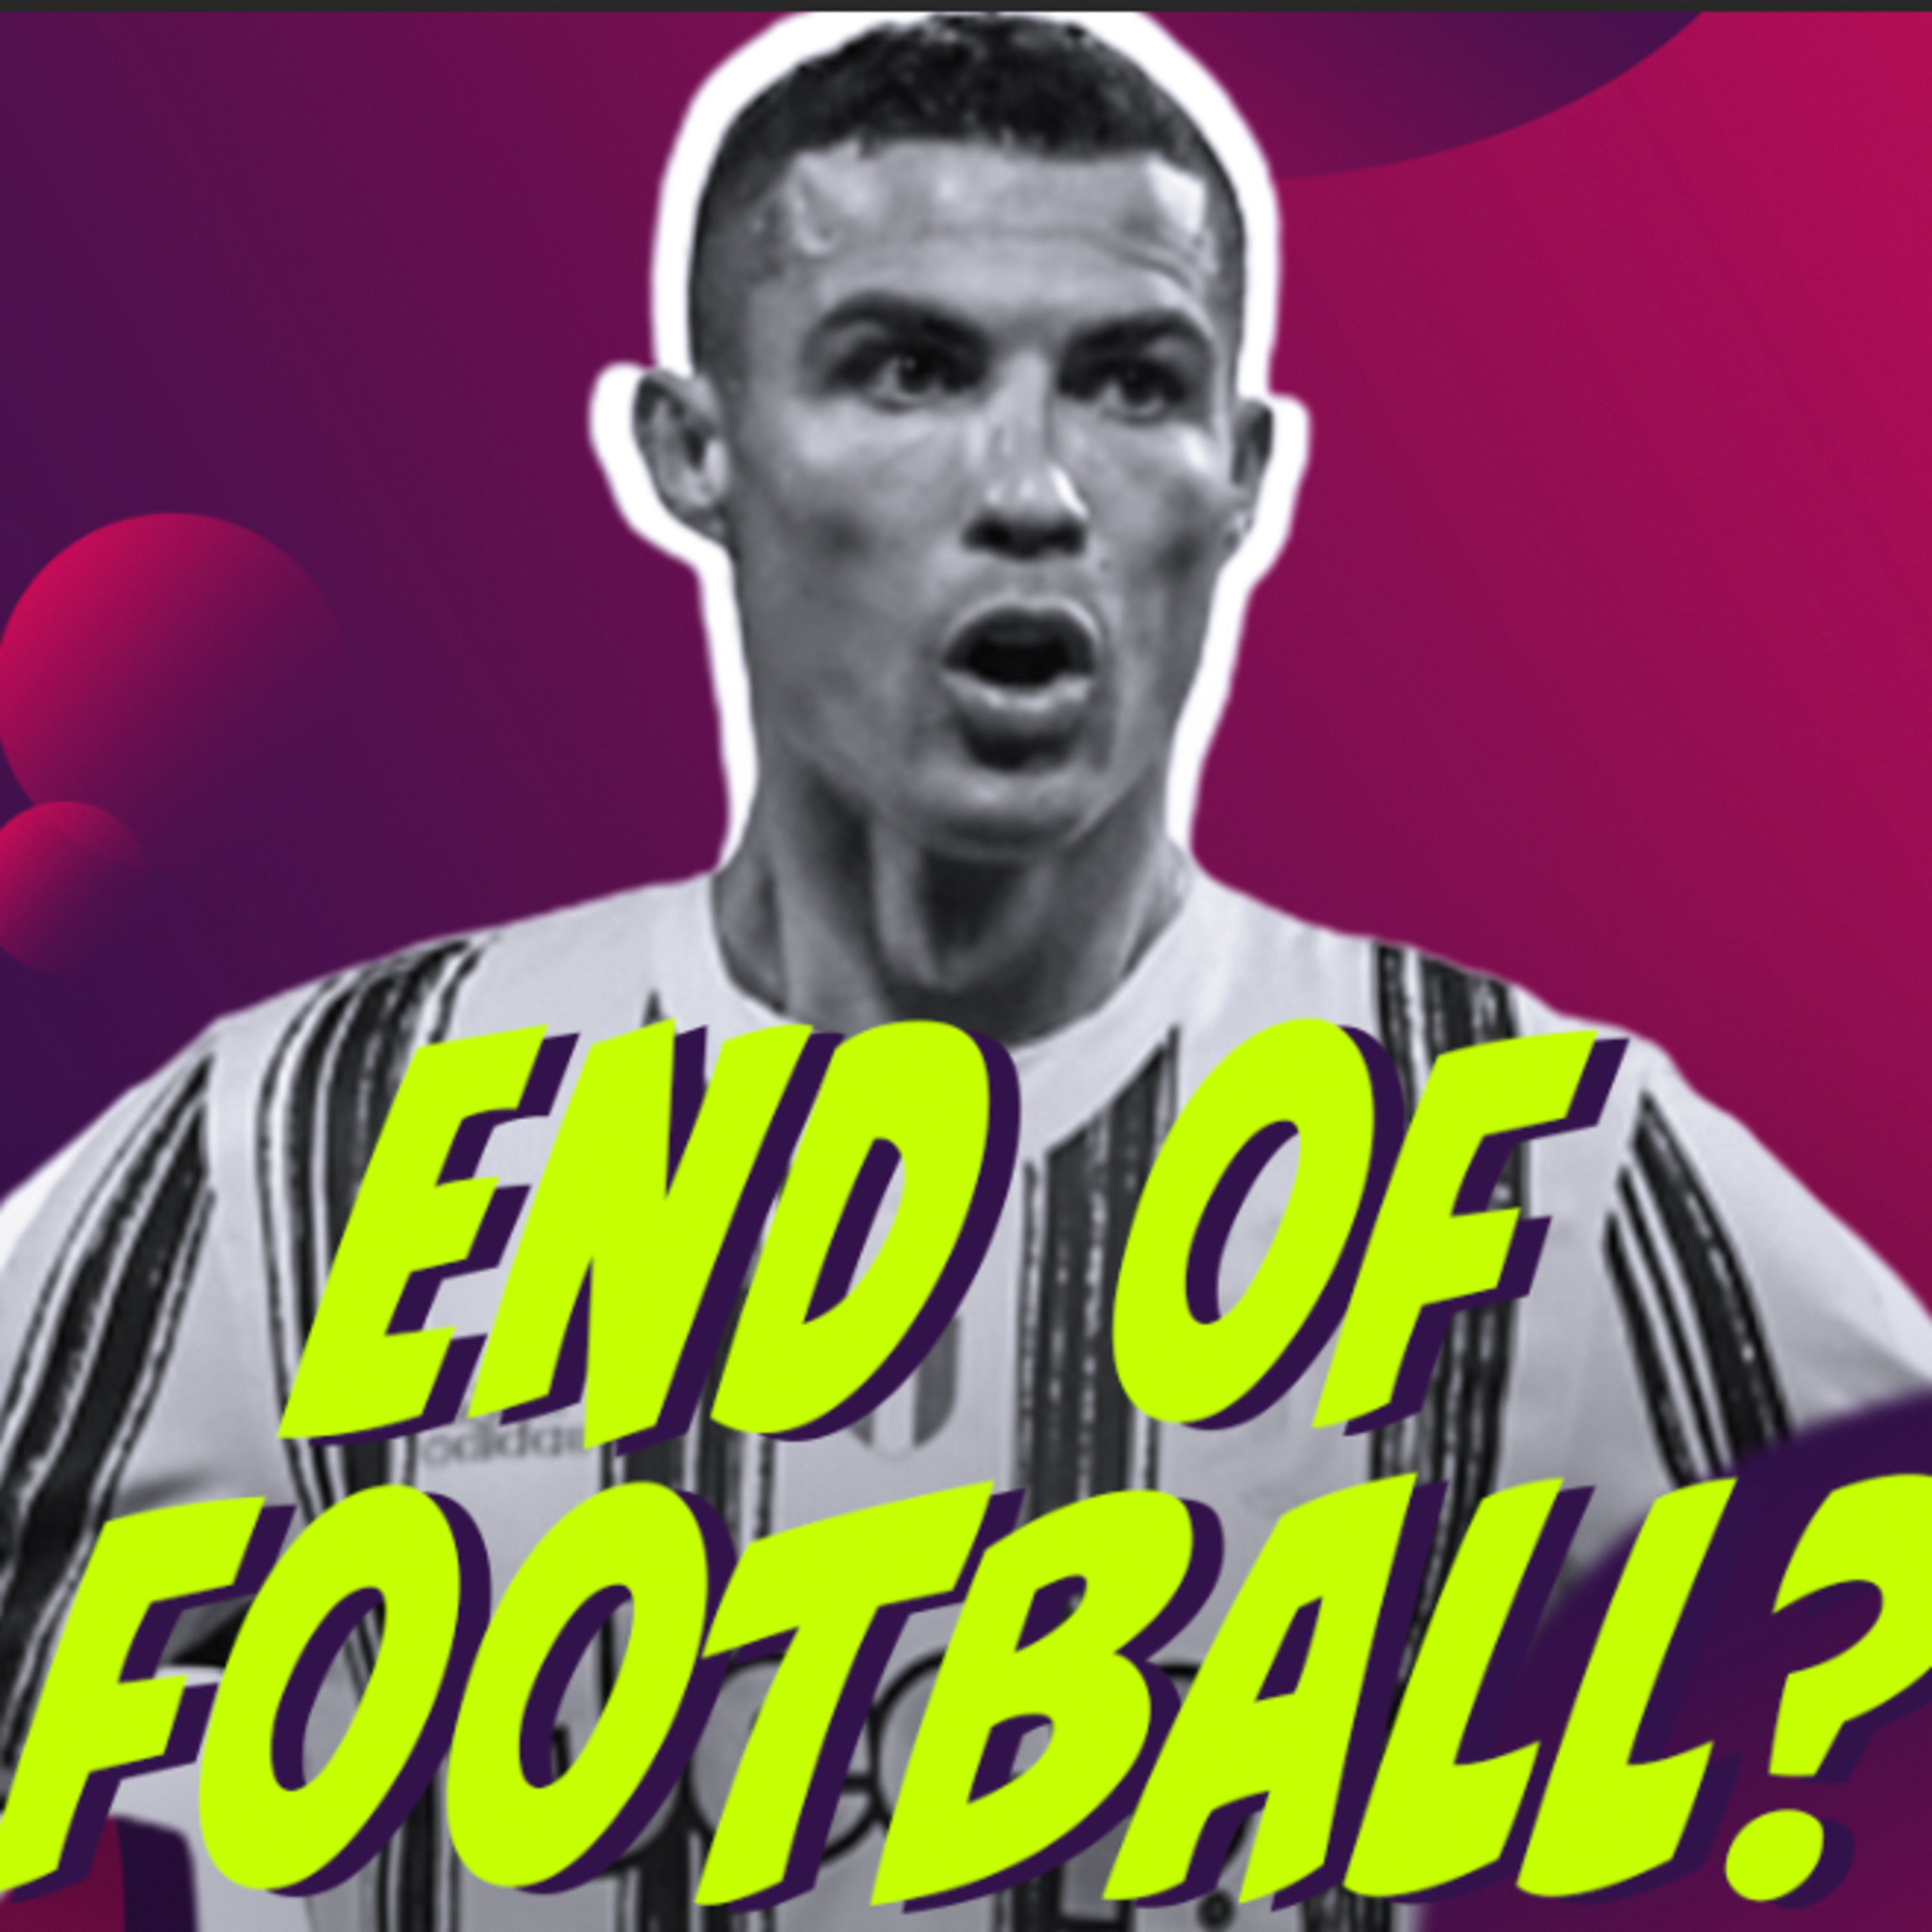 Will the Super League ruin football or make it better?   IFTV Podcast #164